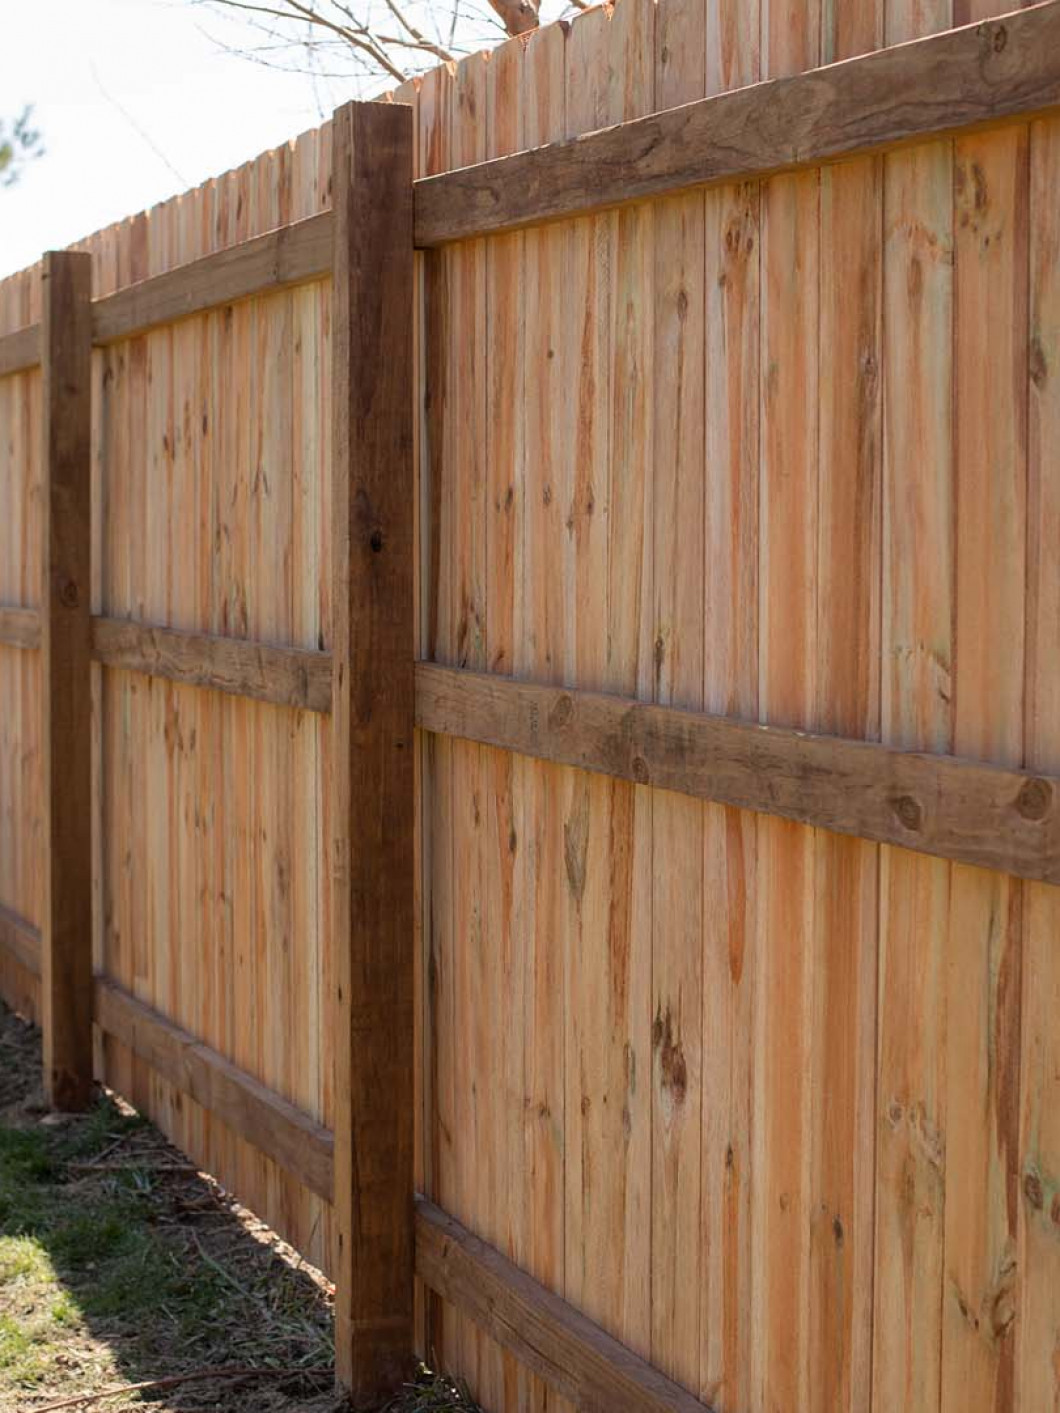 Wooden fence installed at a home with an opening in the middle section of the fence